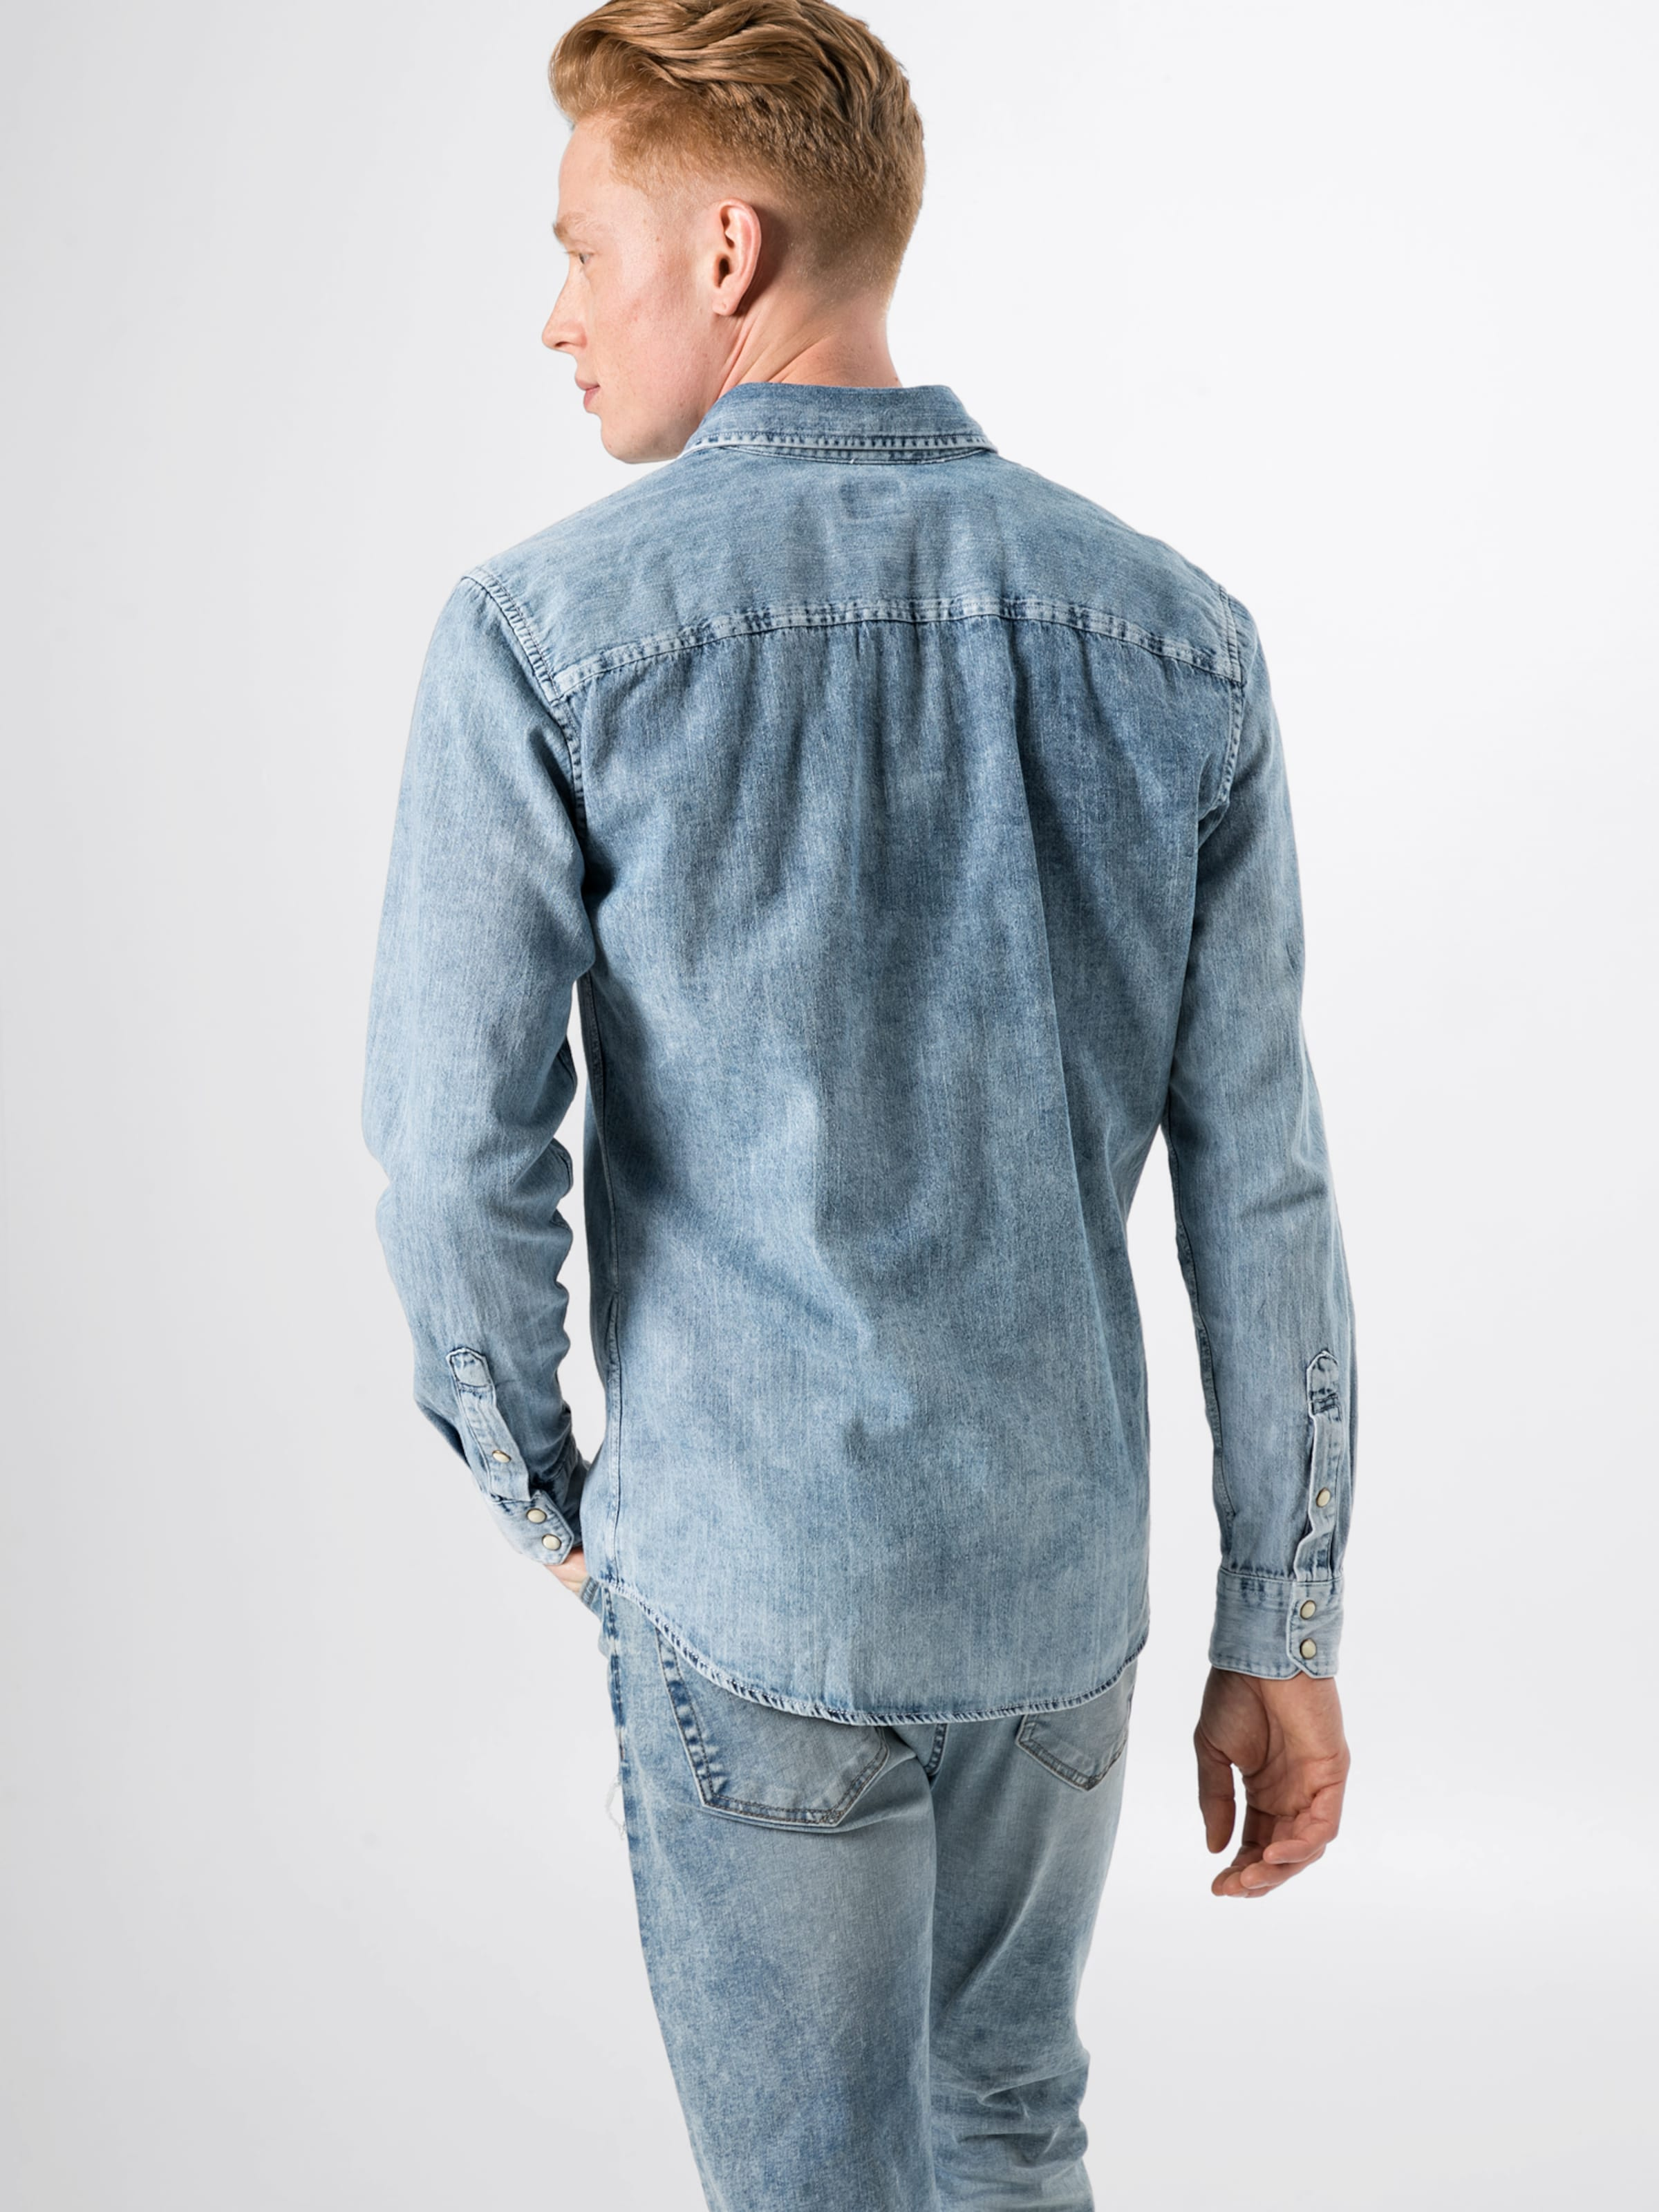 En Jones s' Denim Chemise Bleu 'jjesheridan Shirt L Jackamp; fg76vYby